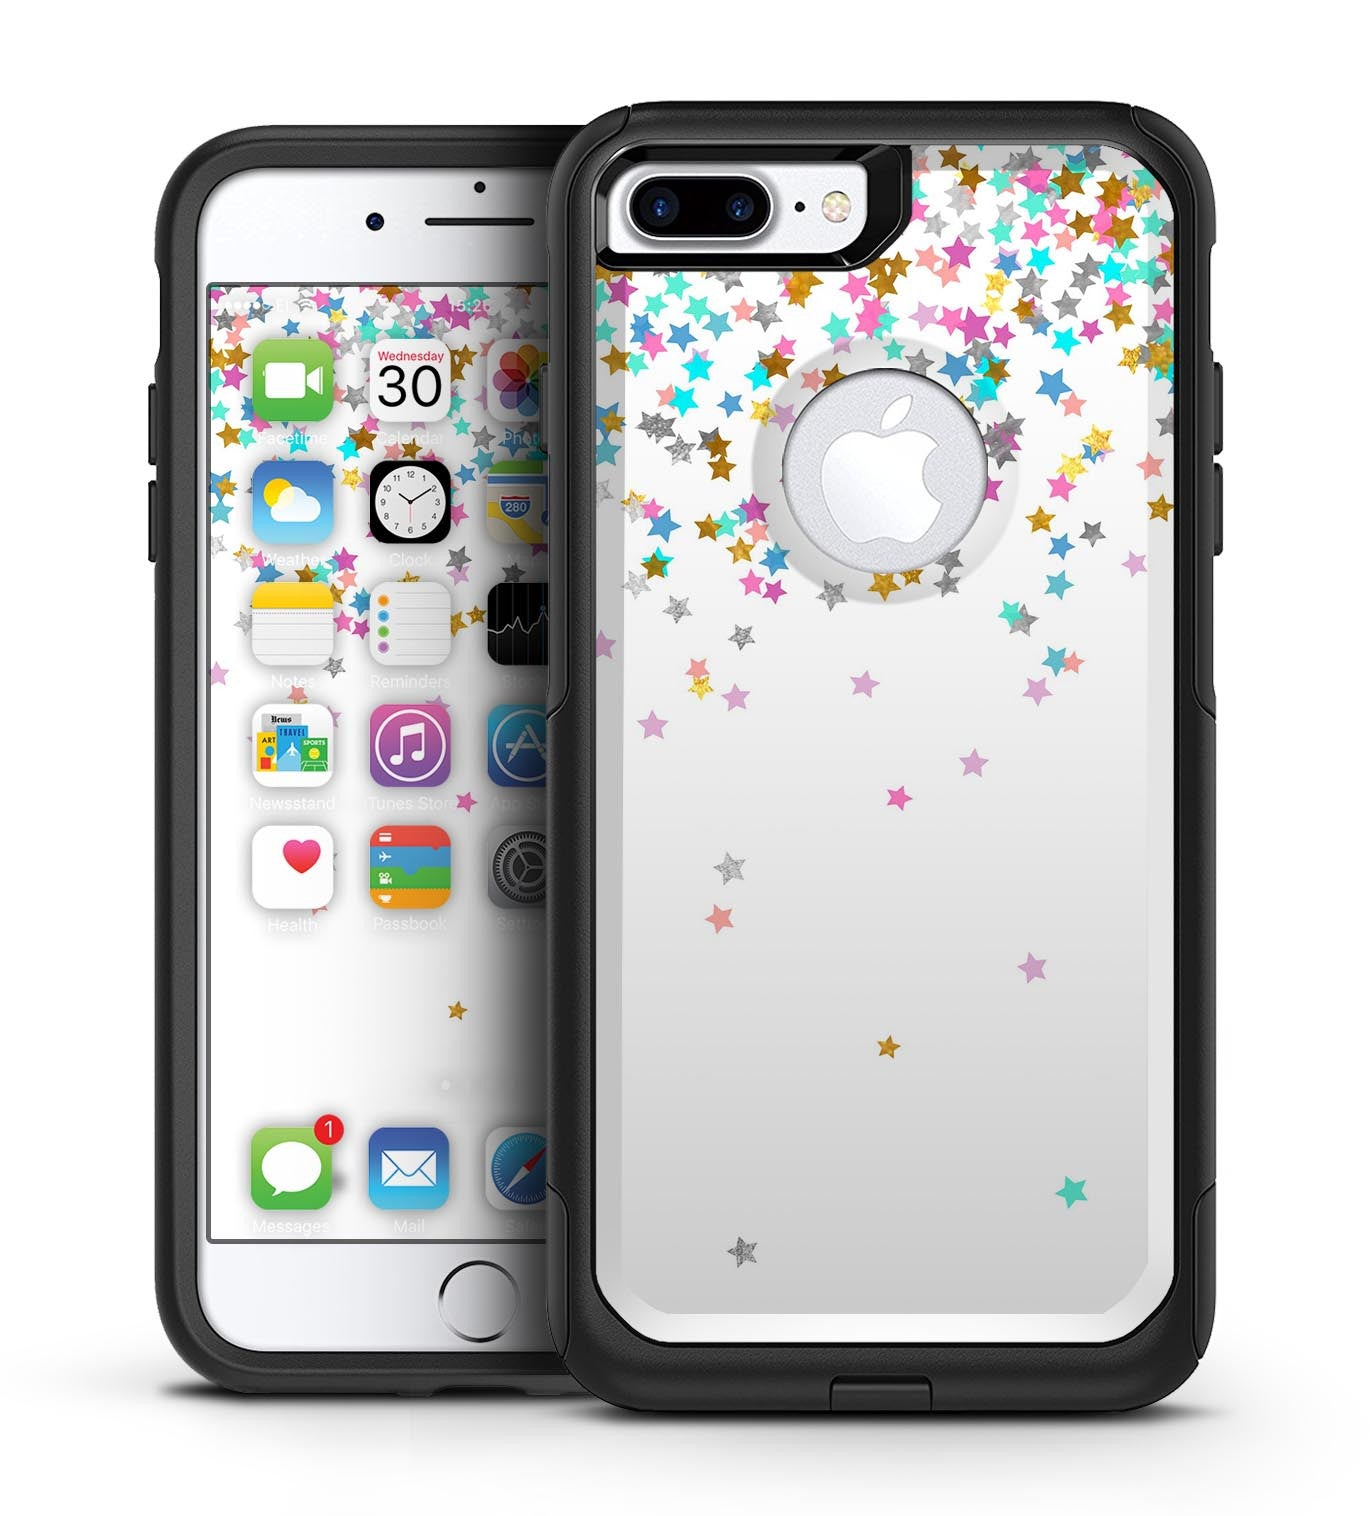 Colorful Falling Stars Over White - iPhone 7 or 7 Plus Commuter Case Skin Kit